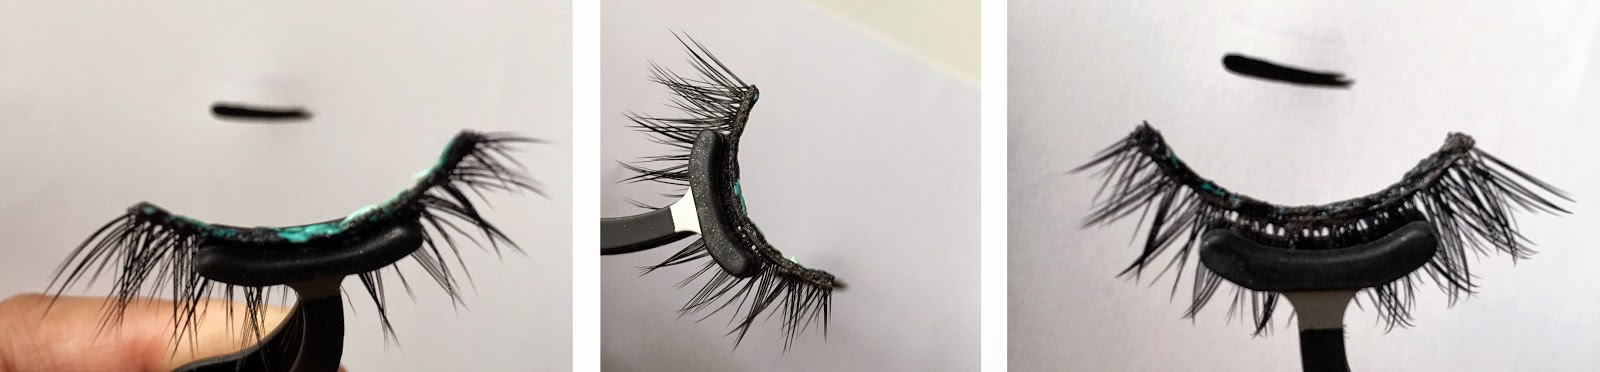 Lash Adhesive by house of lashes #22